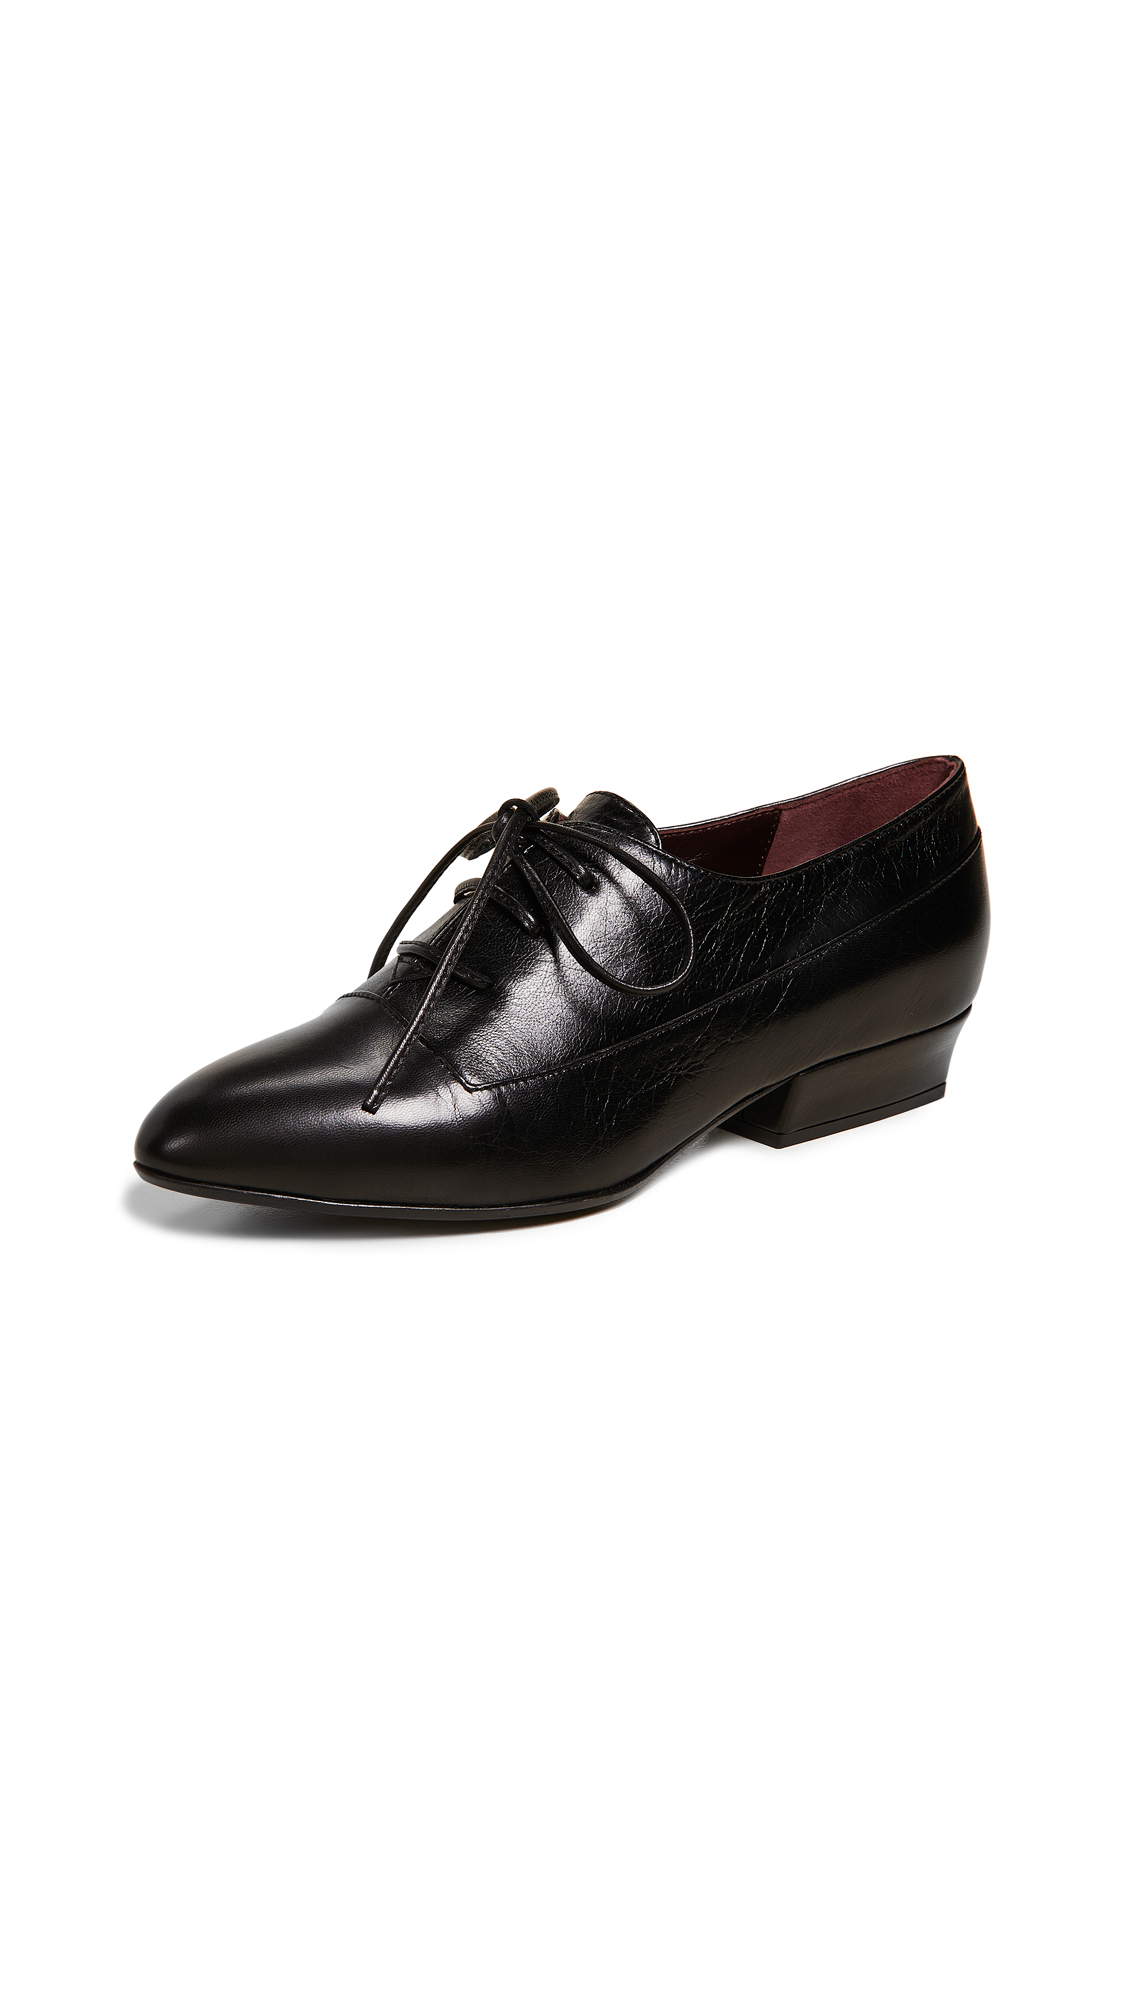 Marc Jacobs Leather Oxfords - Black